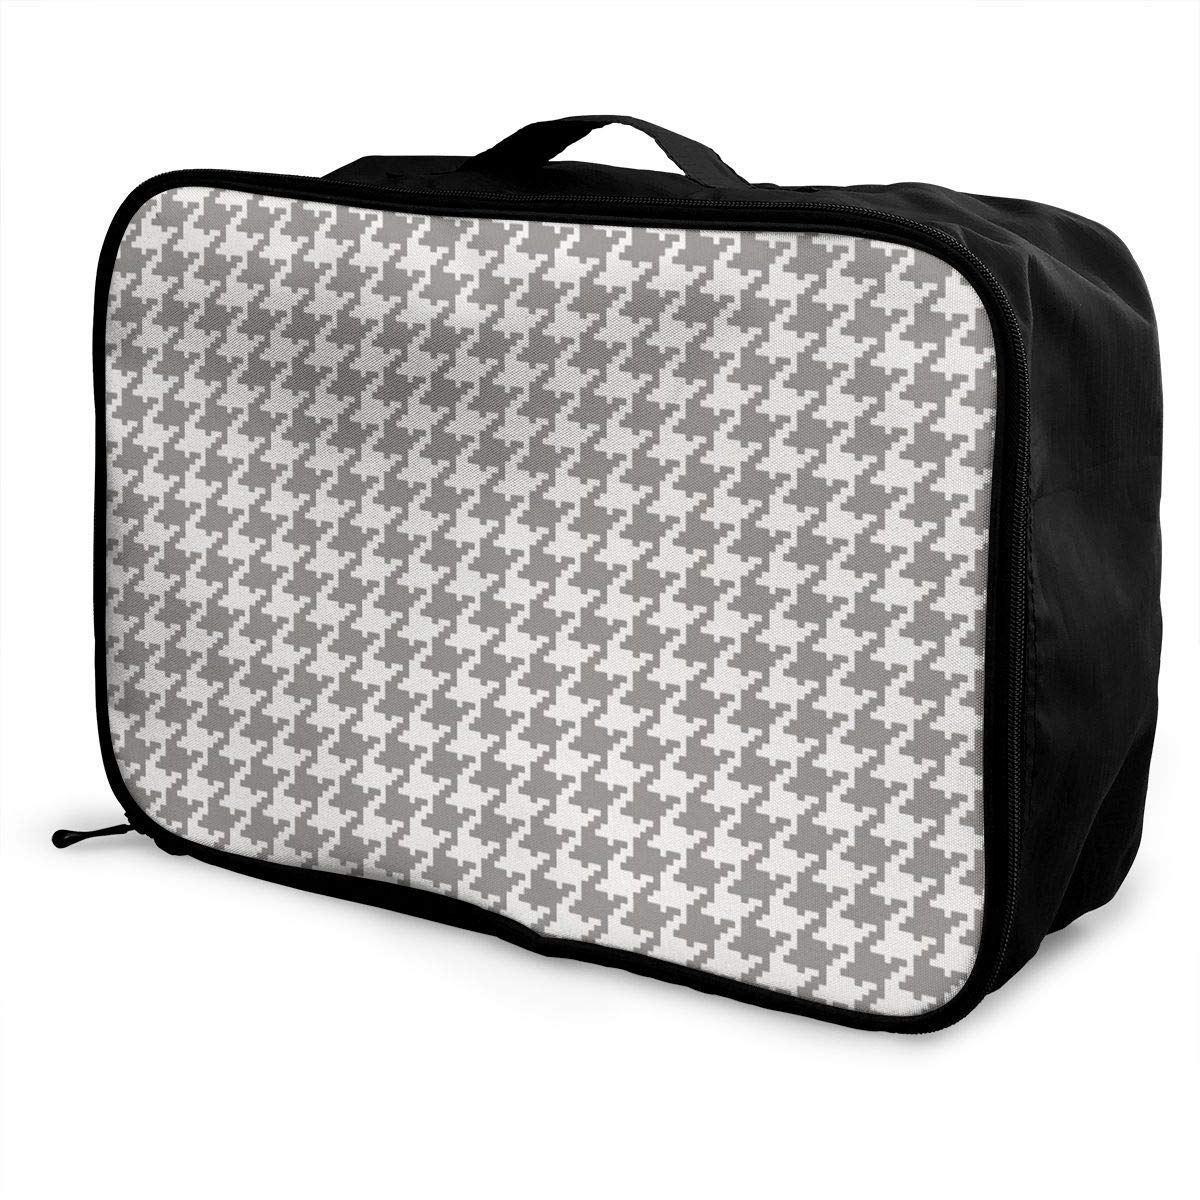 JTRVW Luggage Bags for Travel Travel Duffel Bag Waterproof Fashion Lightweight Large Capacity Portable Duffel Bag for Men /& Women Classic Houndstooth Classic Houndstooth Long Tropical Print